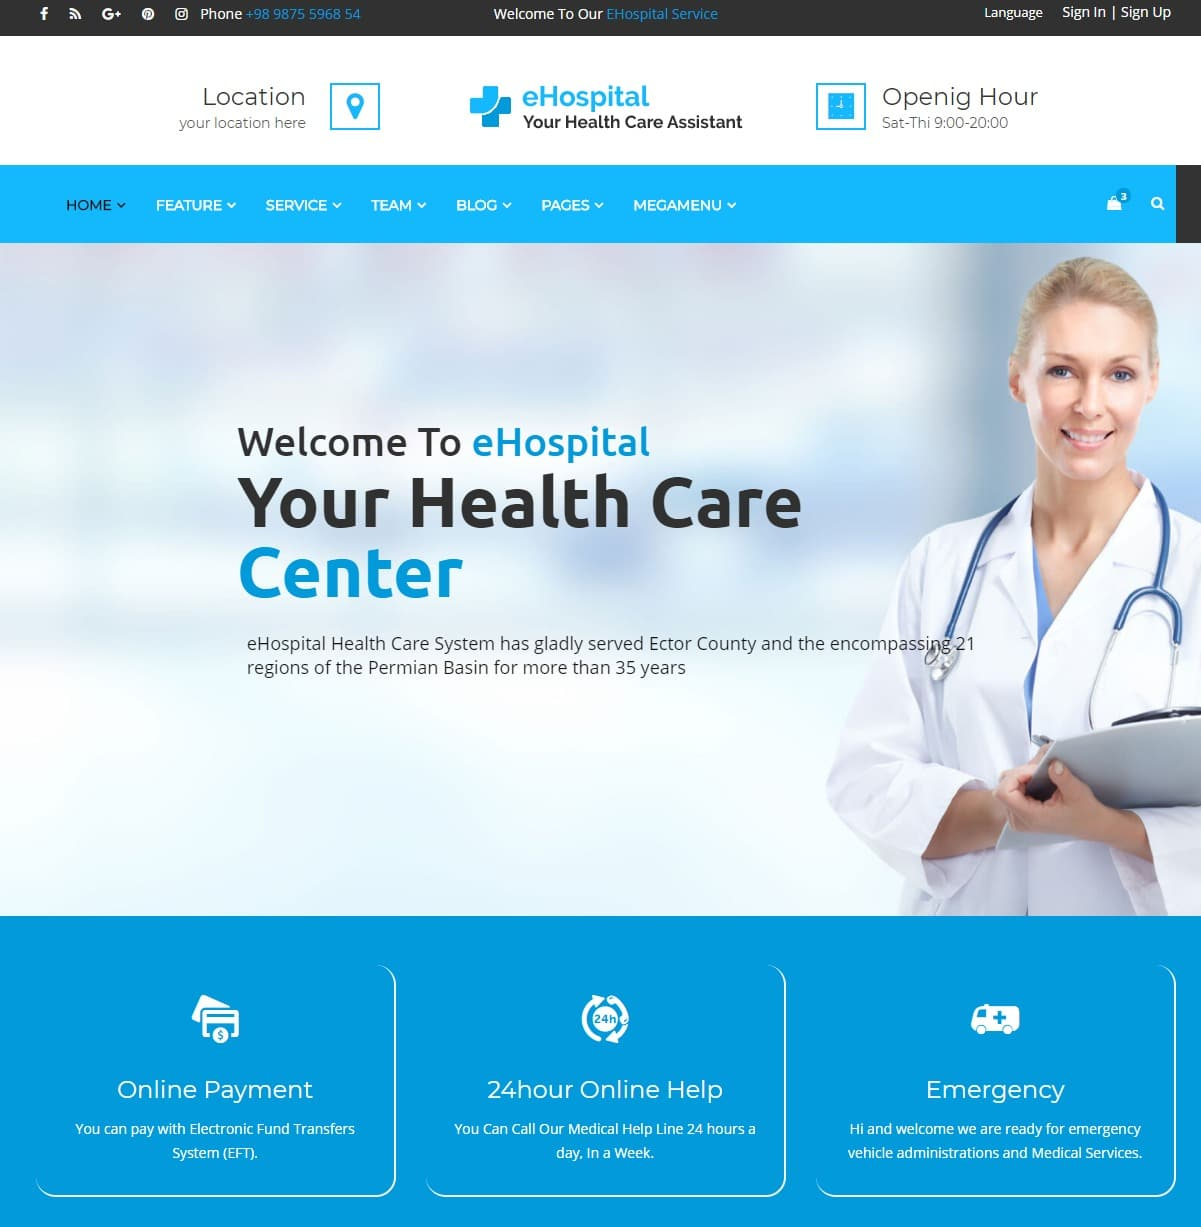 ehospital-html-medical-website-template